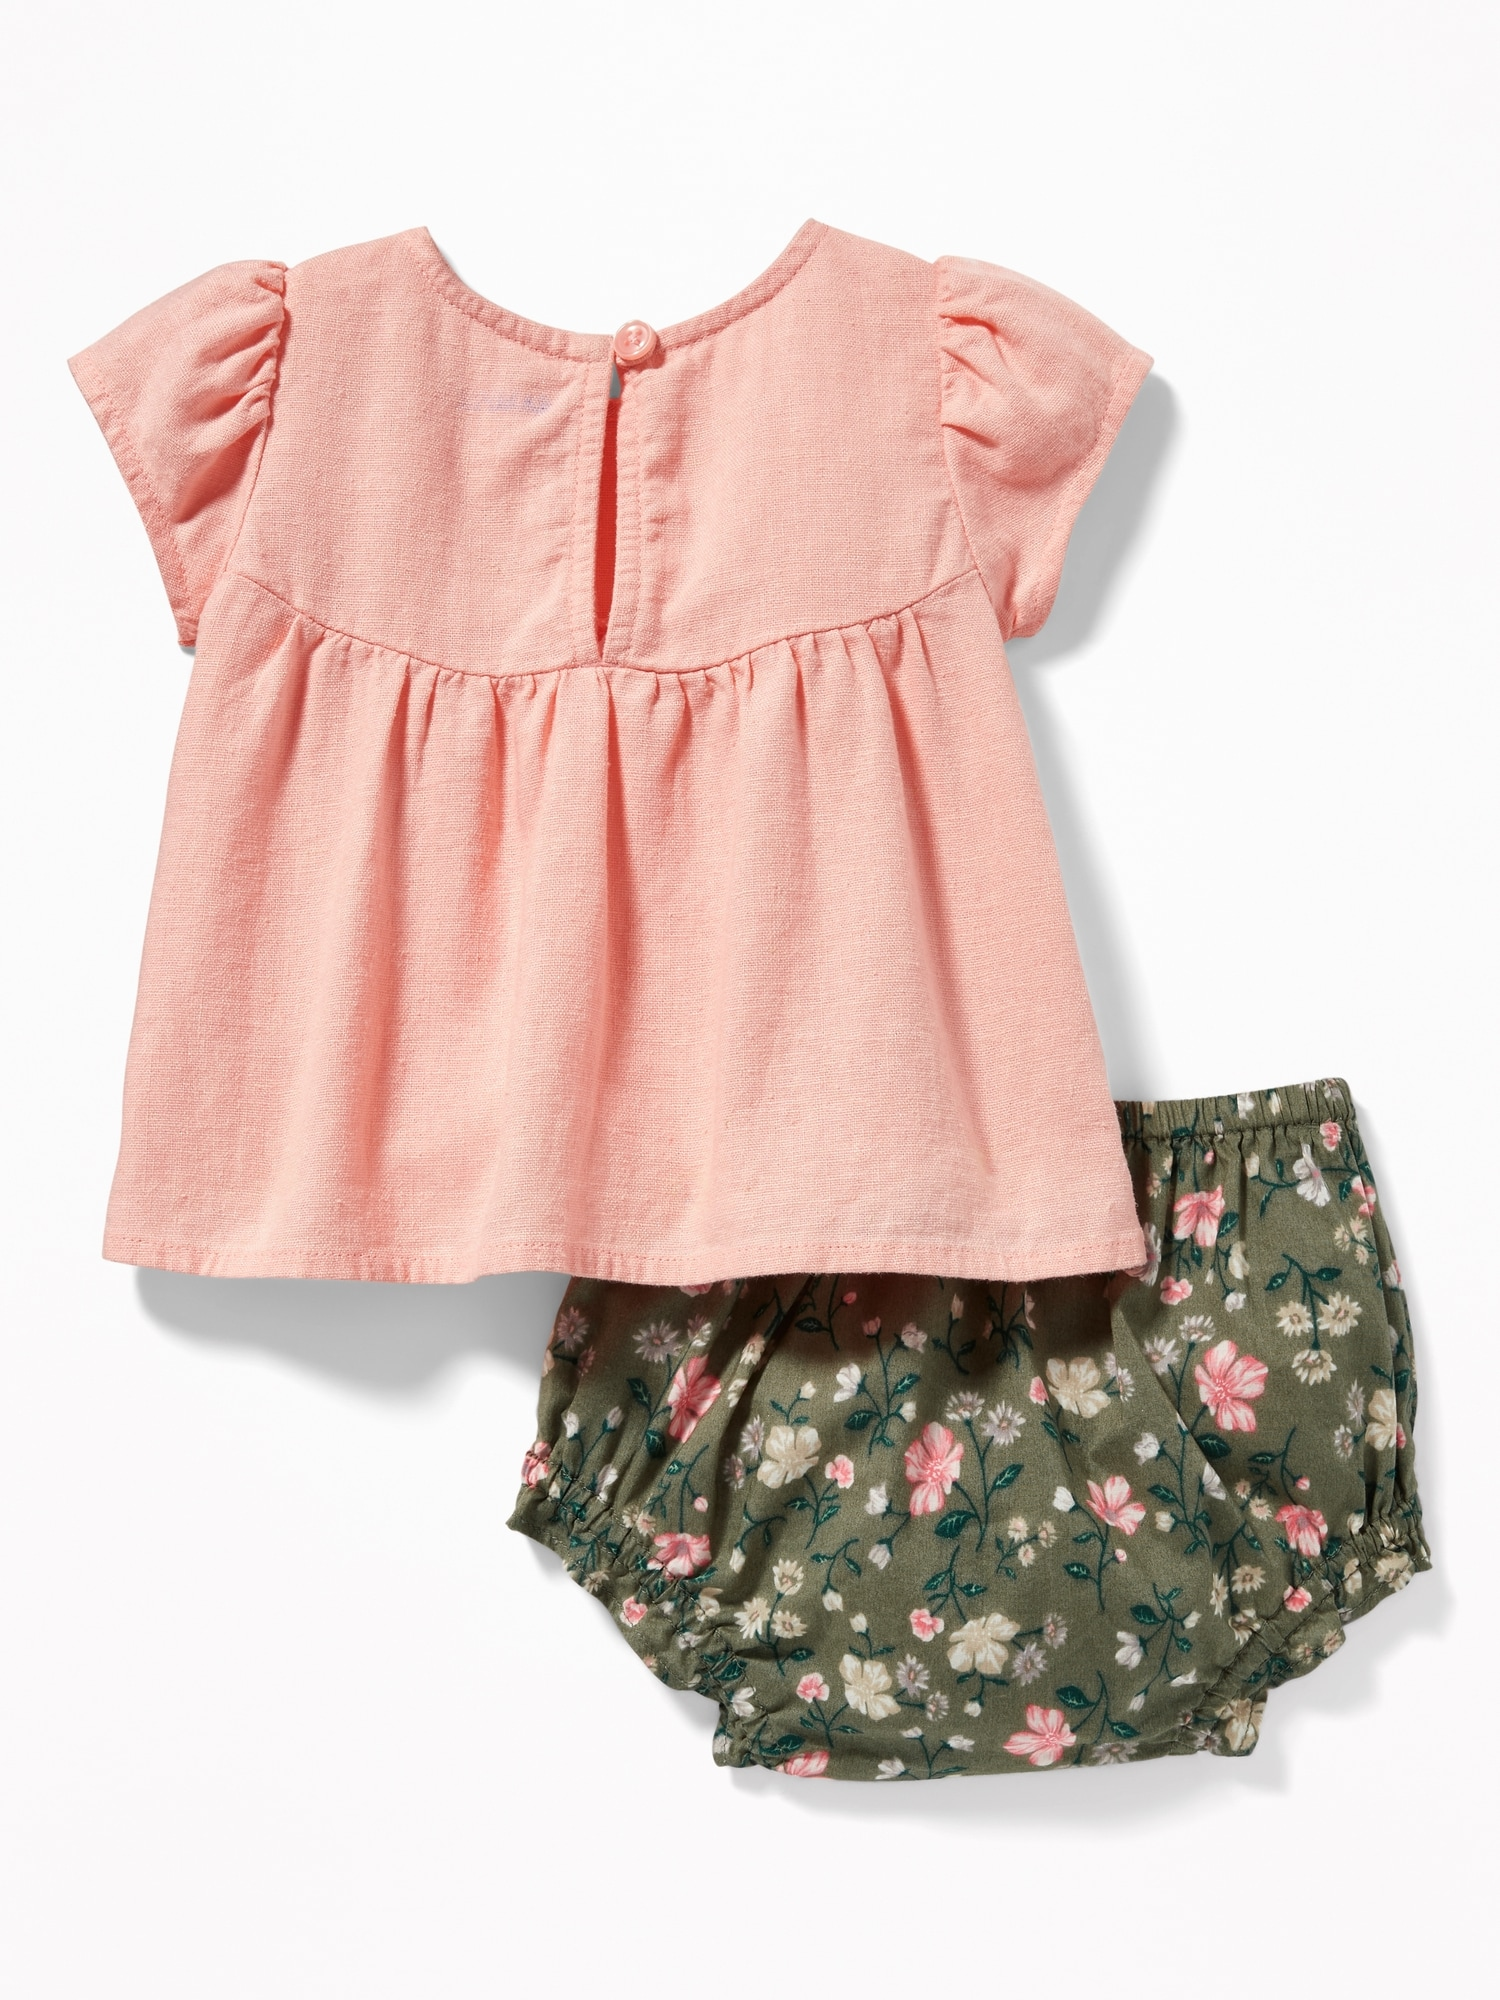 7cda01794 Linen-Blend Top & Bloomers Set for Baby | Old Navy